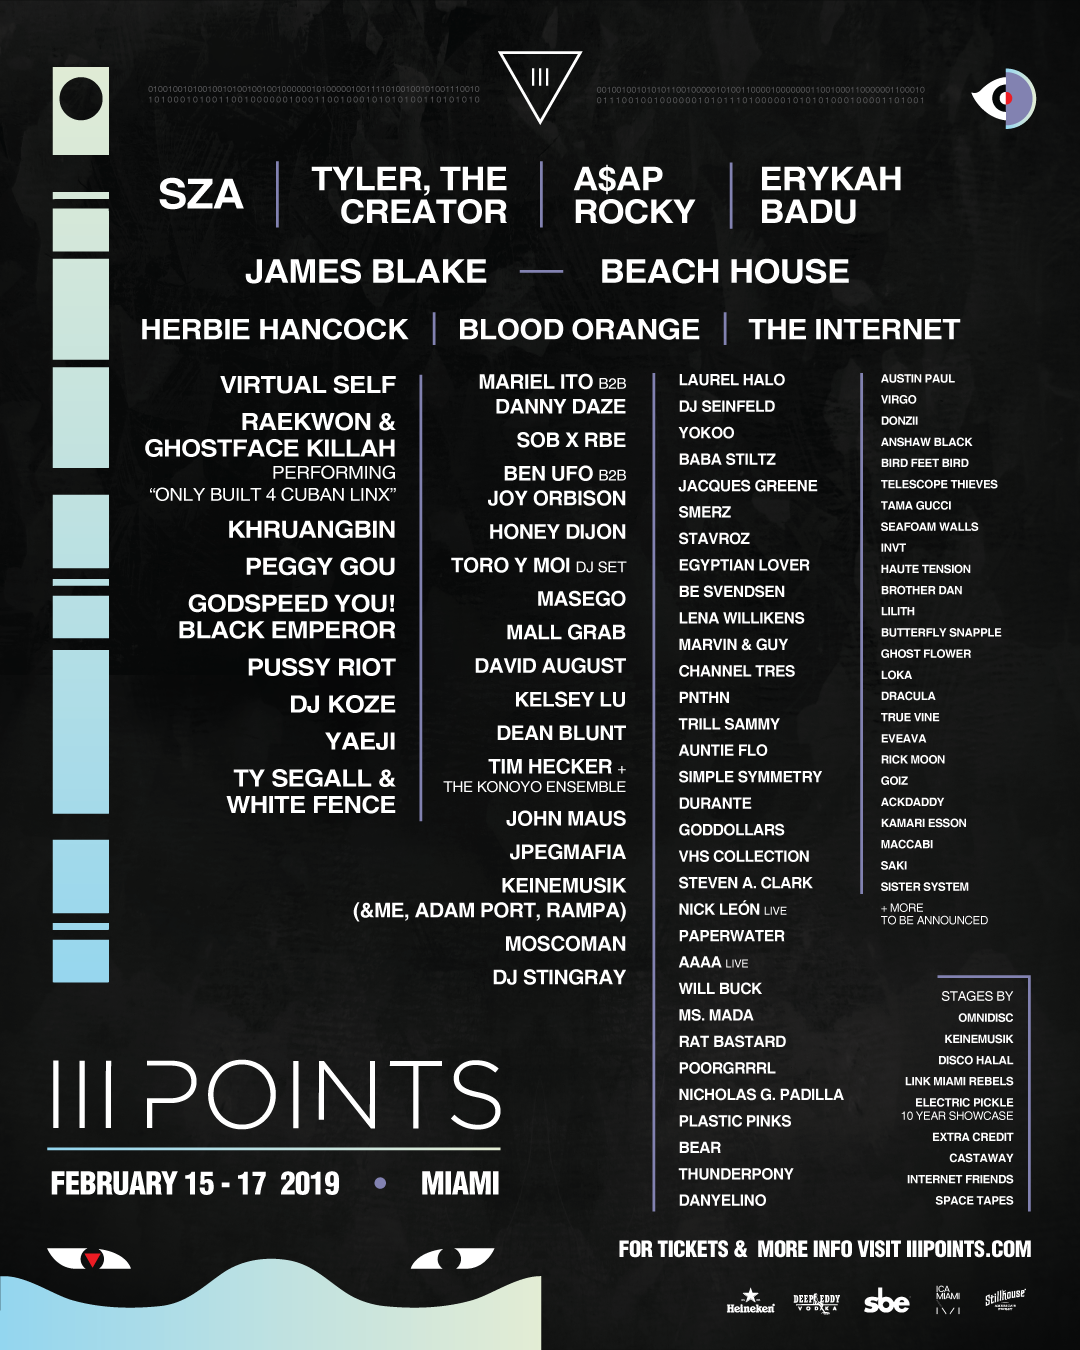 IIIPoints2019.png